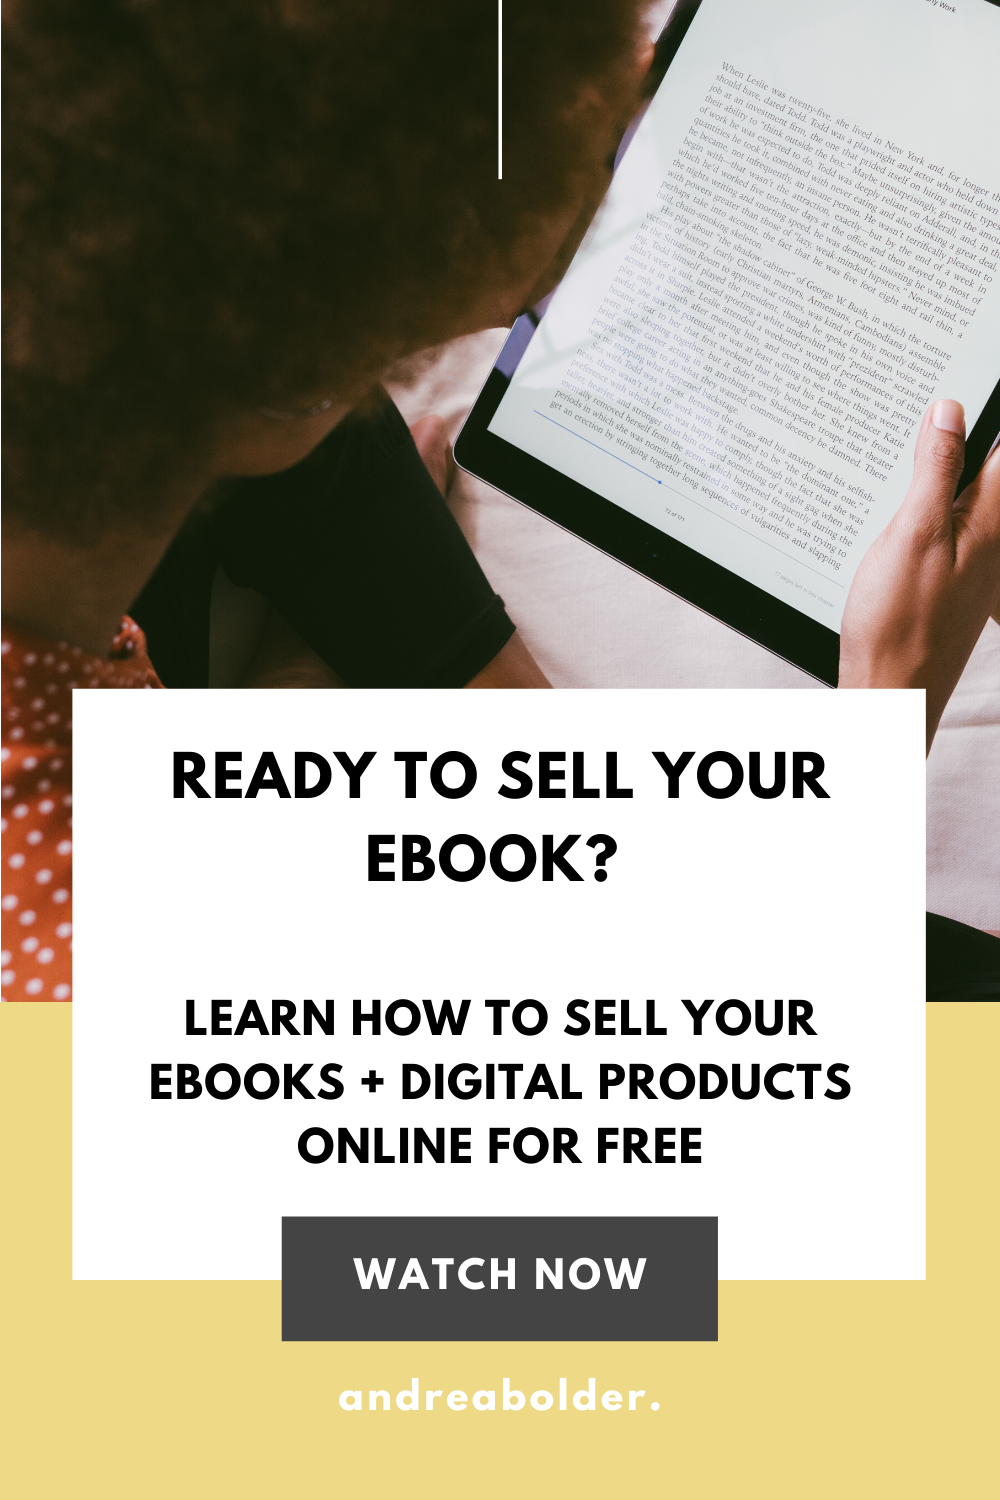 HOW TO SELL YOUR EBOOK OR DIGITAL PRODUCTS ONLINE